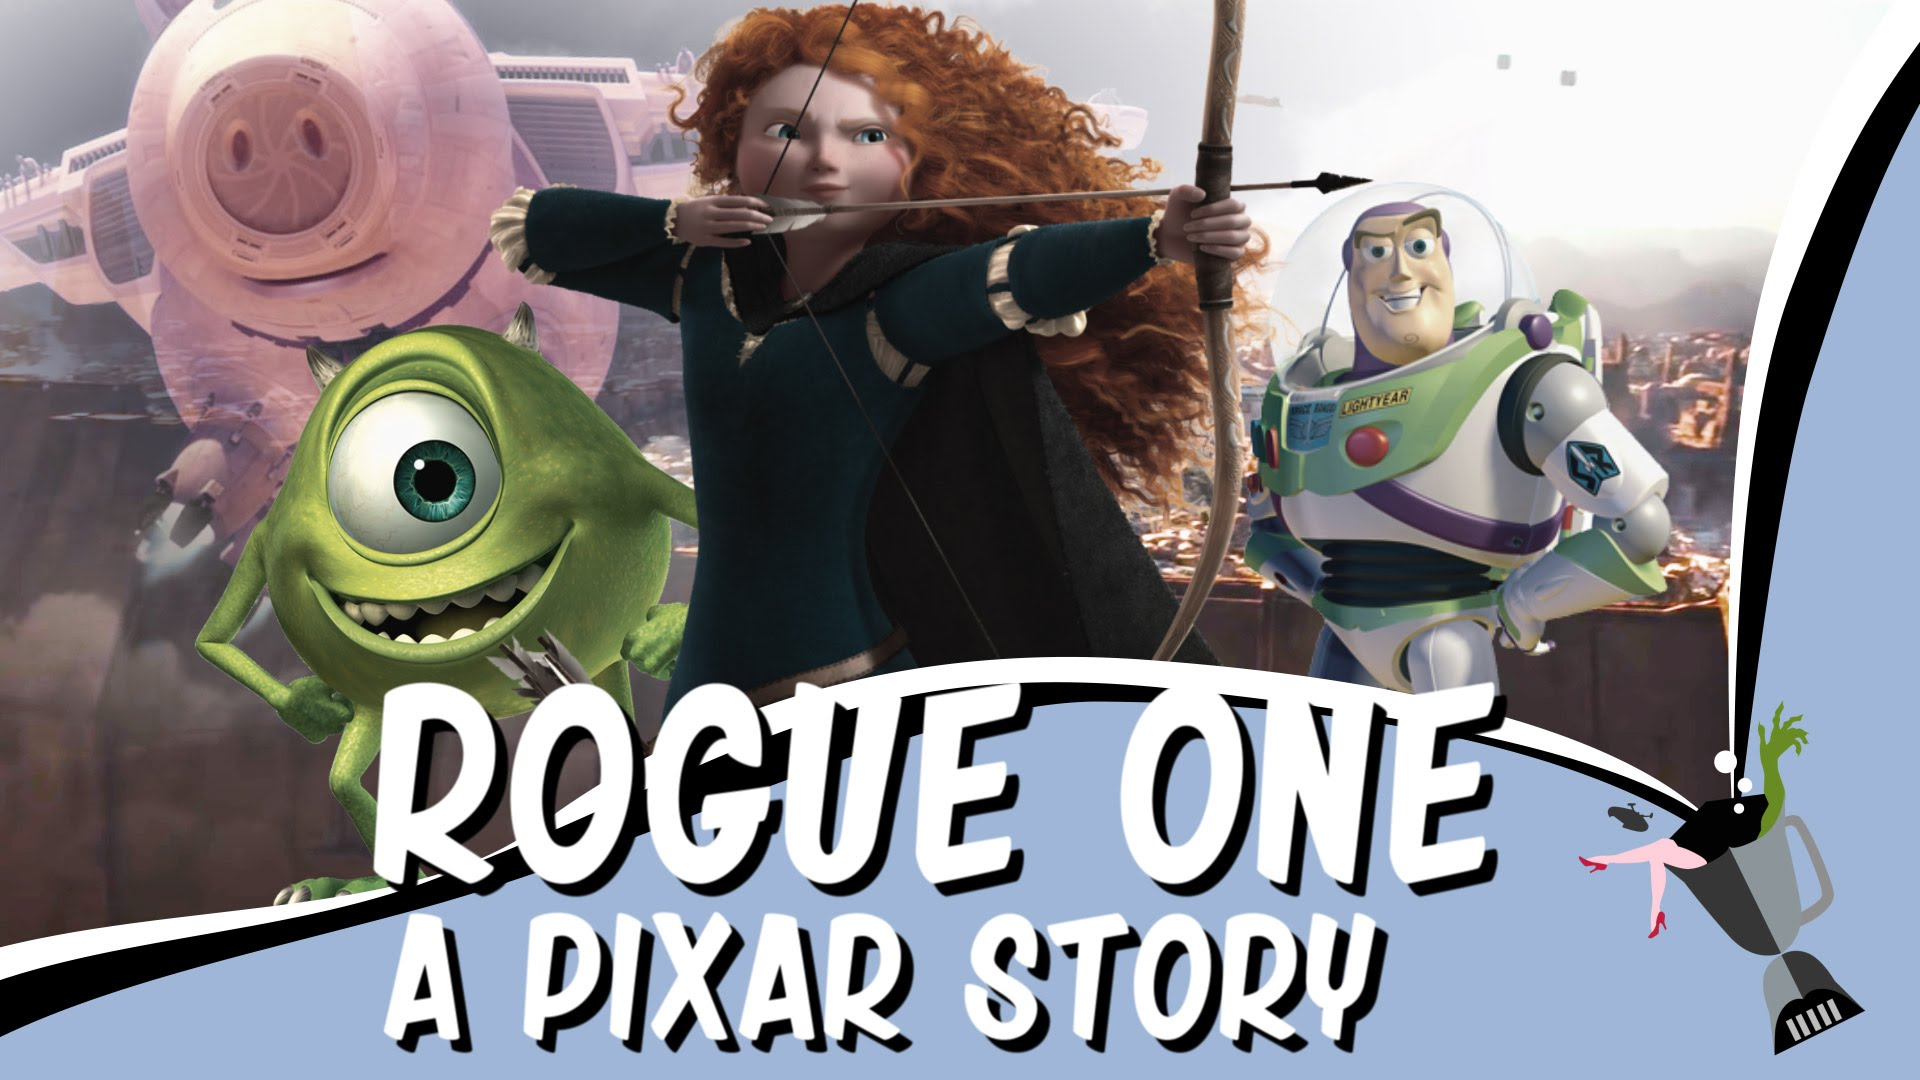 If Pixar created Star Wars: Rogue One